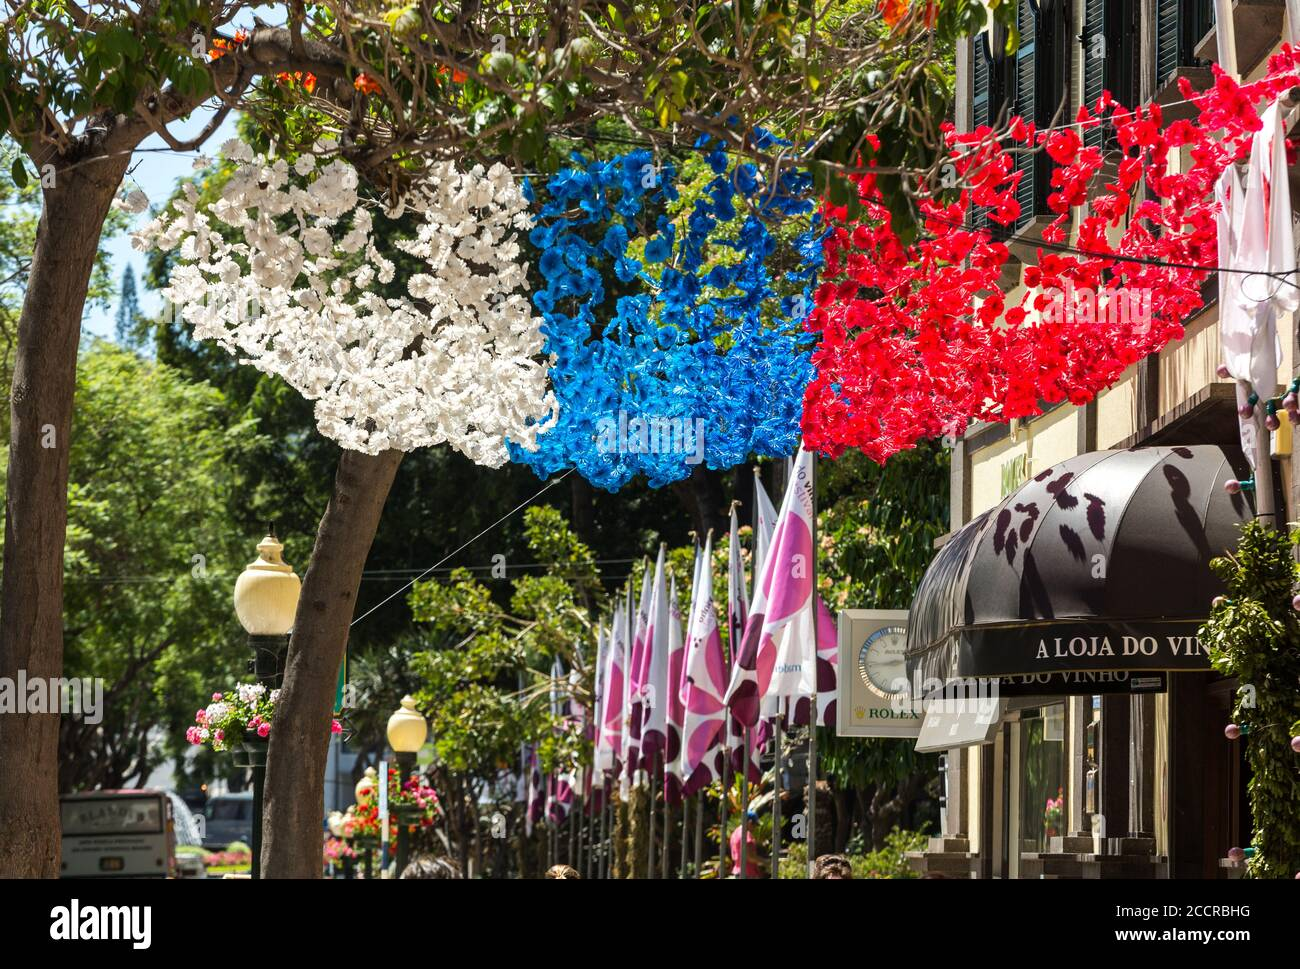 FUNCHAL, MADEIRA, PORTUGAL - SEPTEMBER 1, 2016: Colorful decorations  from garlands over streets during the Madeira Wine Festival in Funchal on Madeir Stock Photo